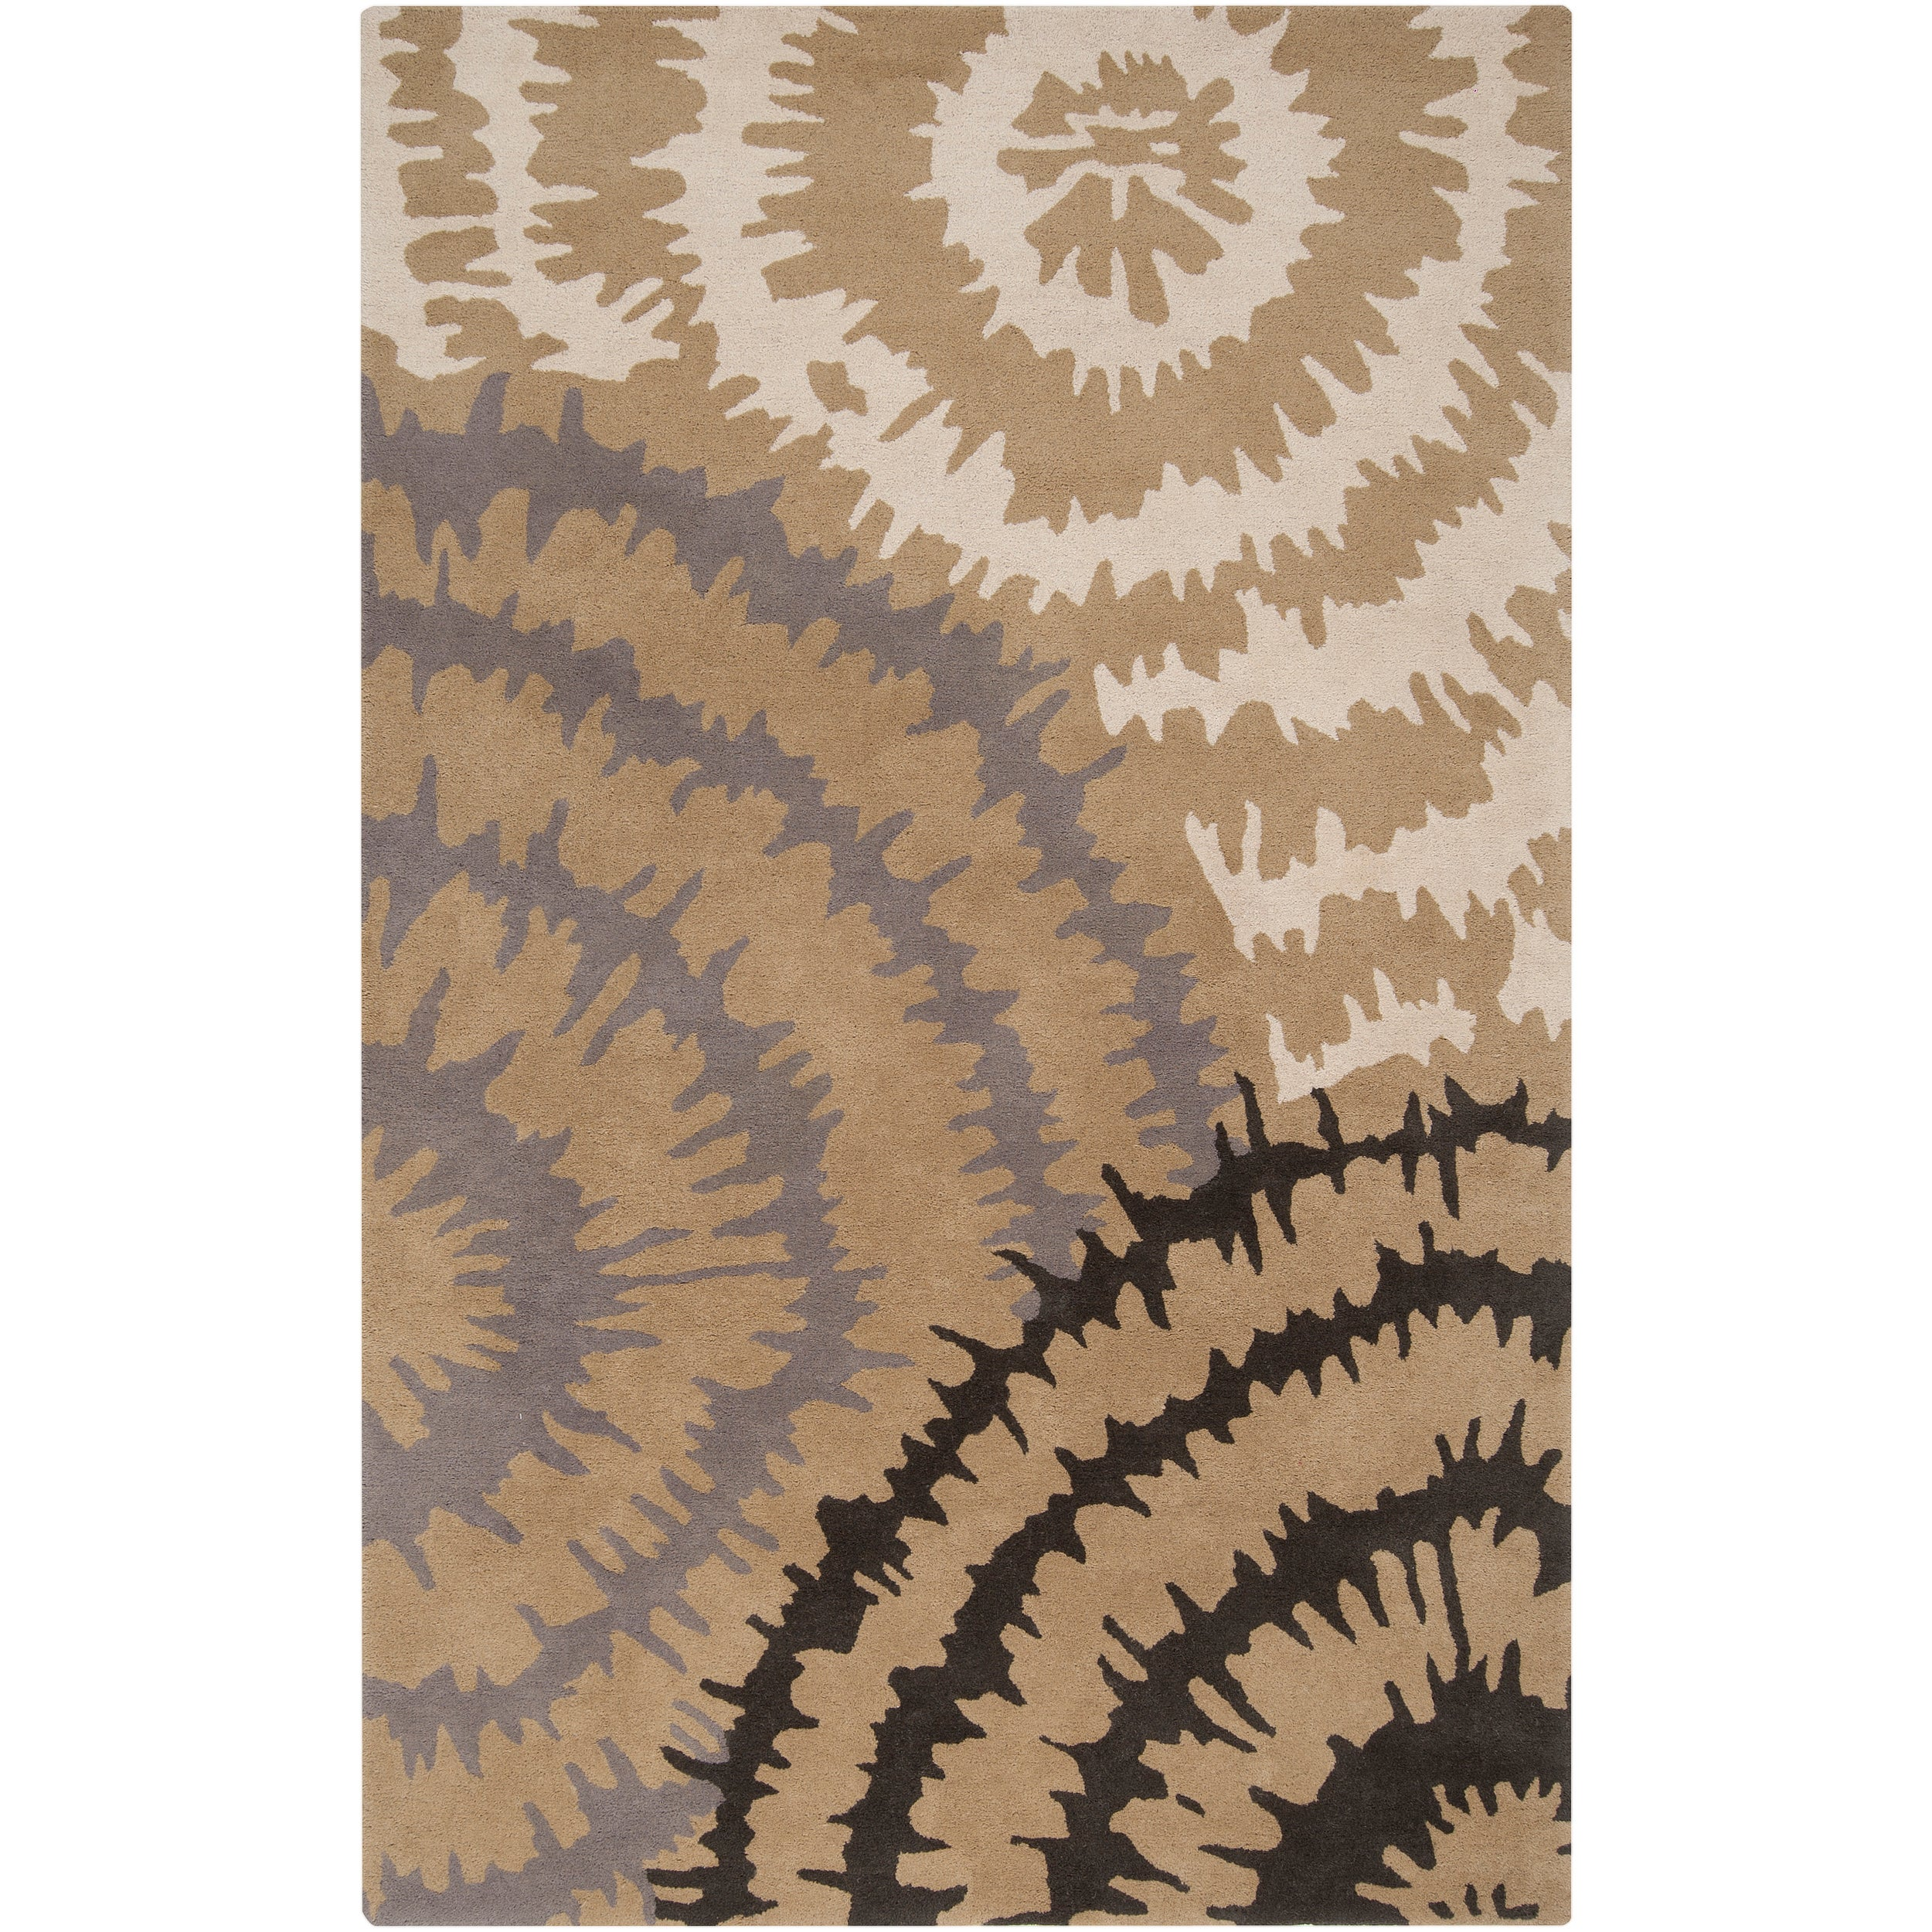 Hand-tufted 'Diego Martin' Gray Abstract Plush Wool Area Rug (9' x 12')